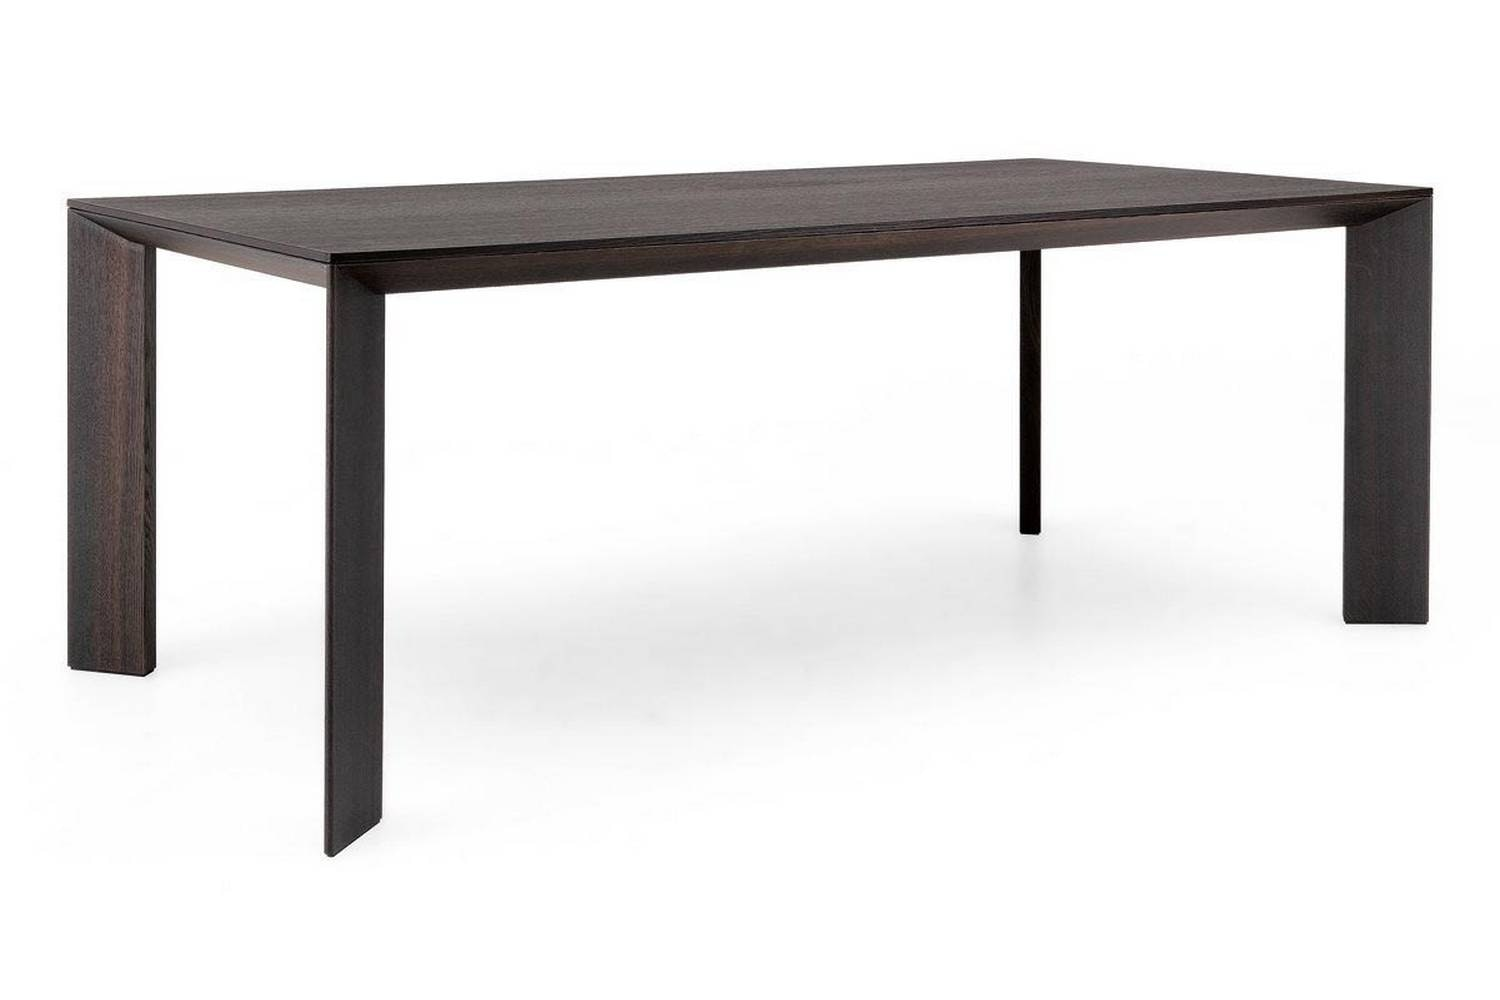 Gill Extension Table by Roberto Barbieri for Poliform